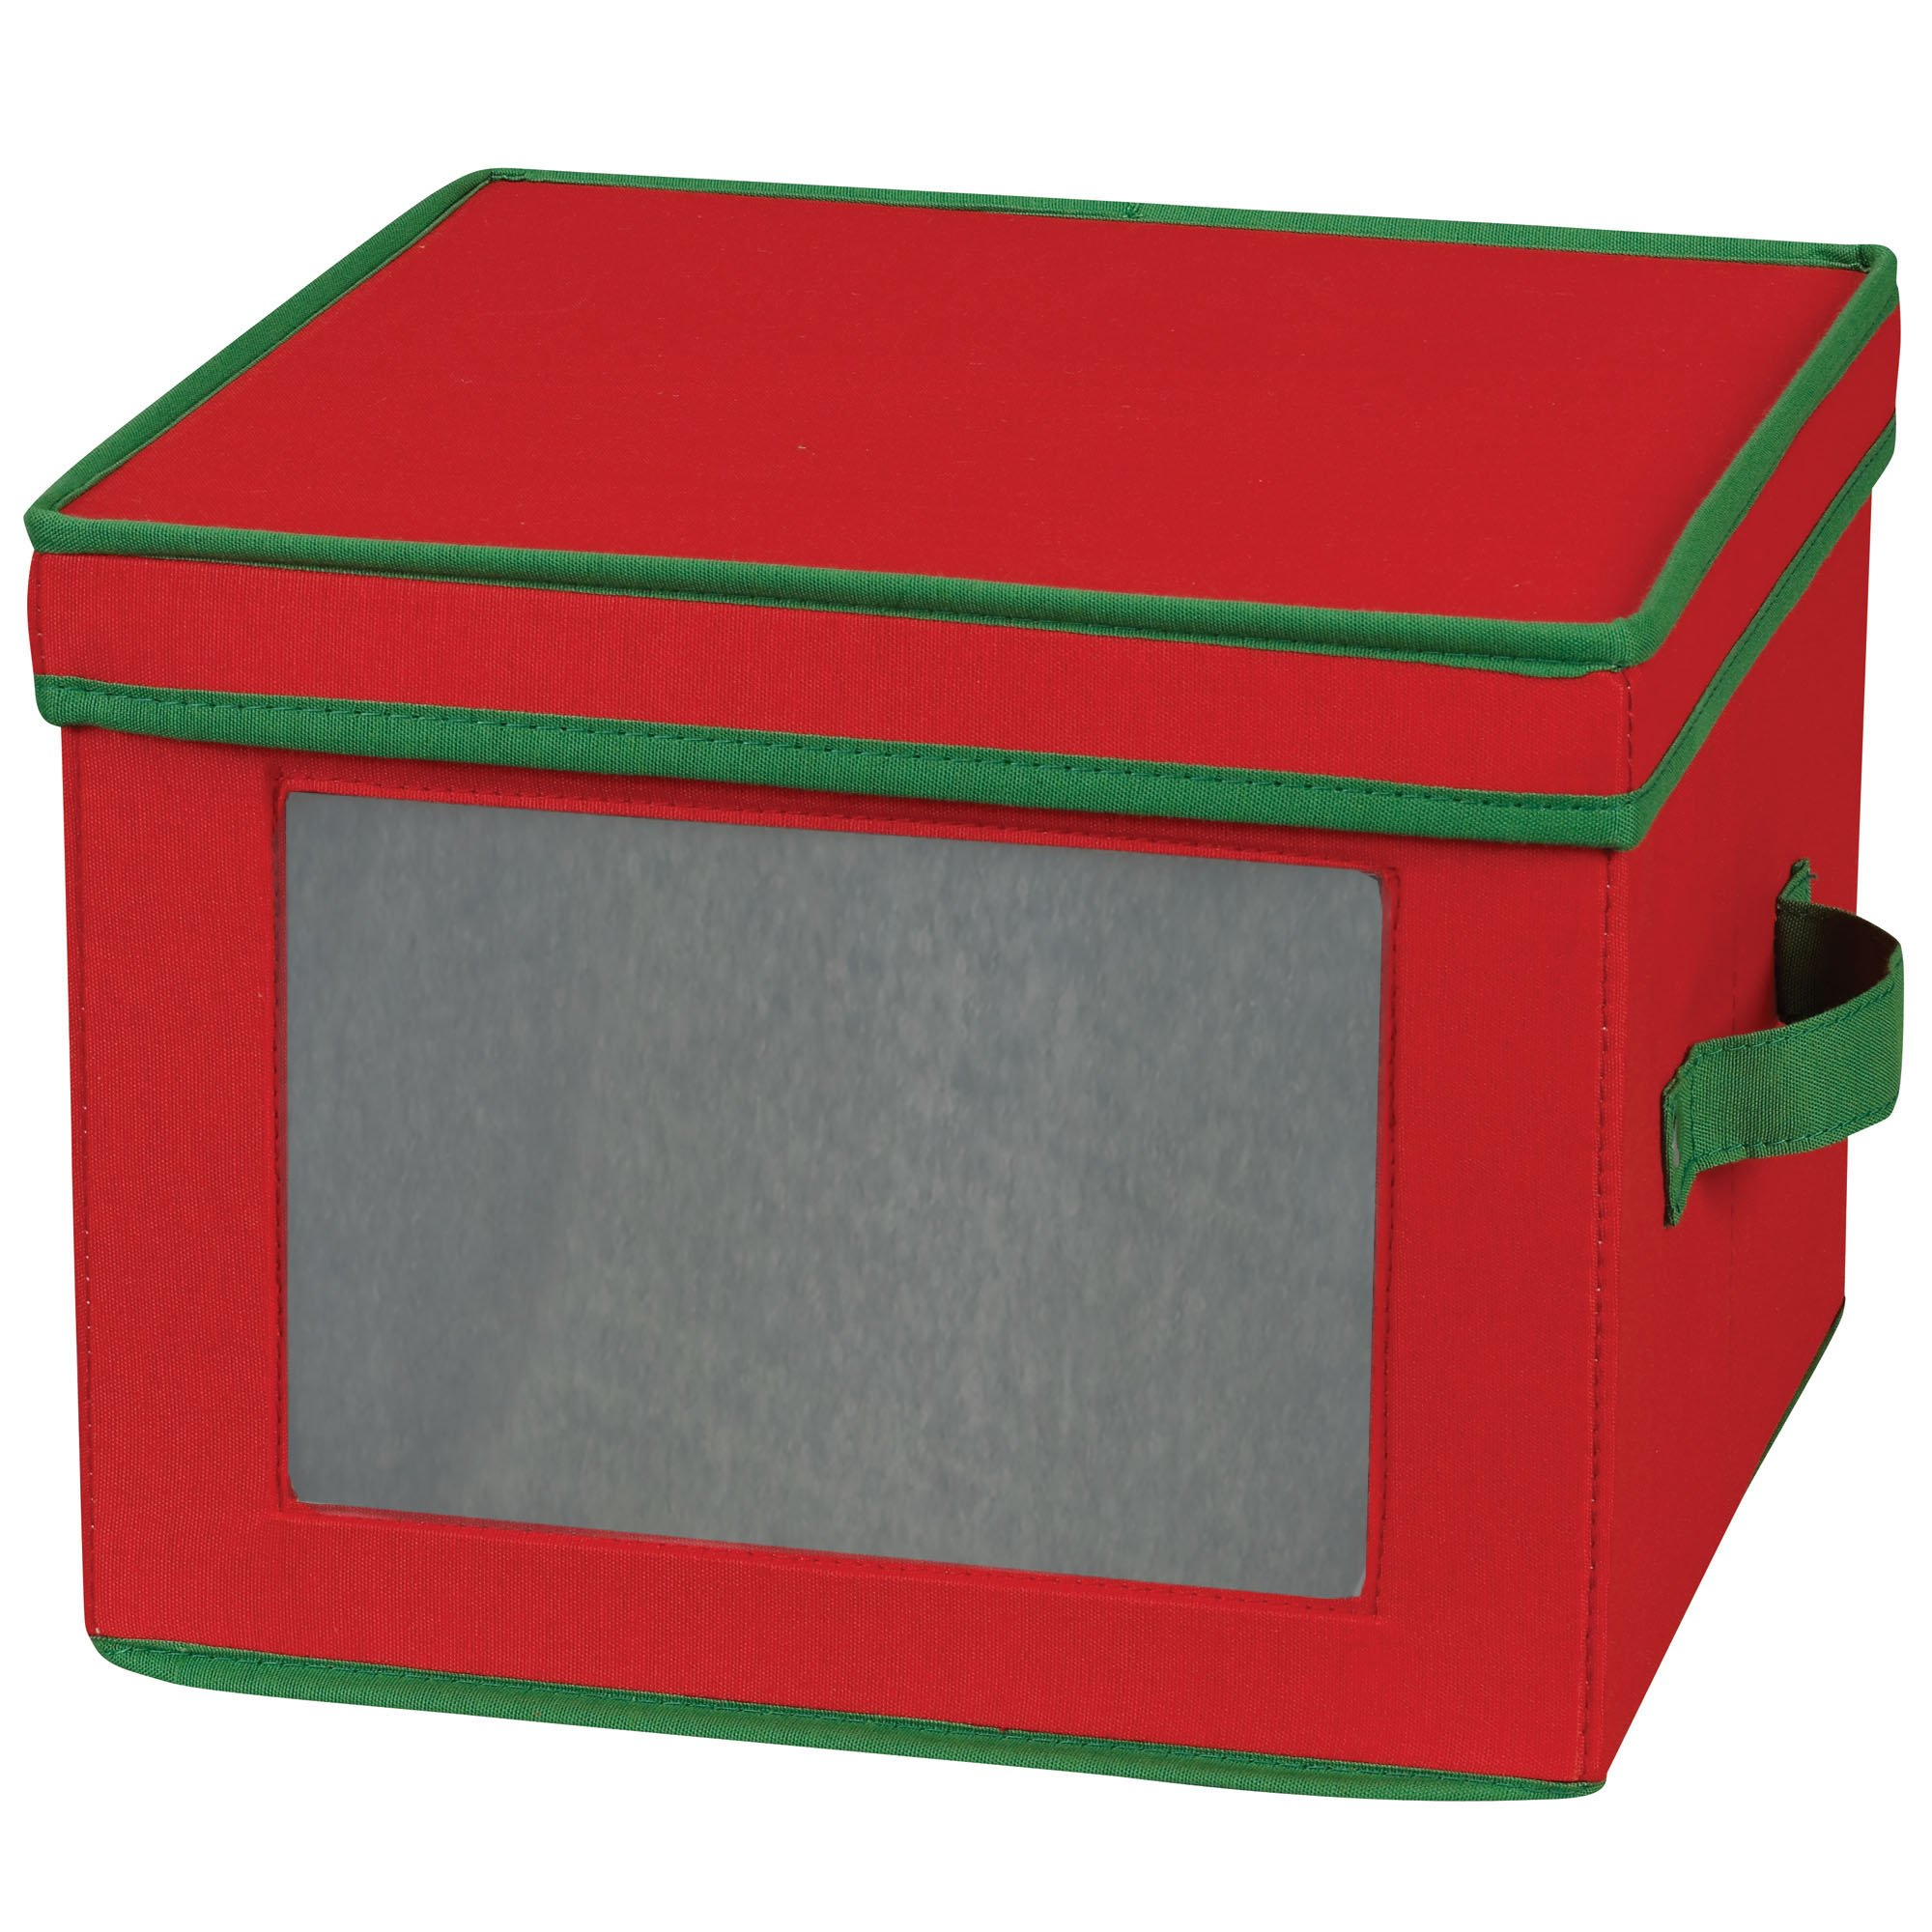 Household Essentials 536RED Holiday China Storage Chest with Lid and Handles | Dinner Plate | Red Canvas with Green Trim by Household Essentials